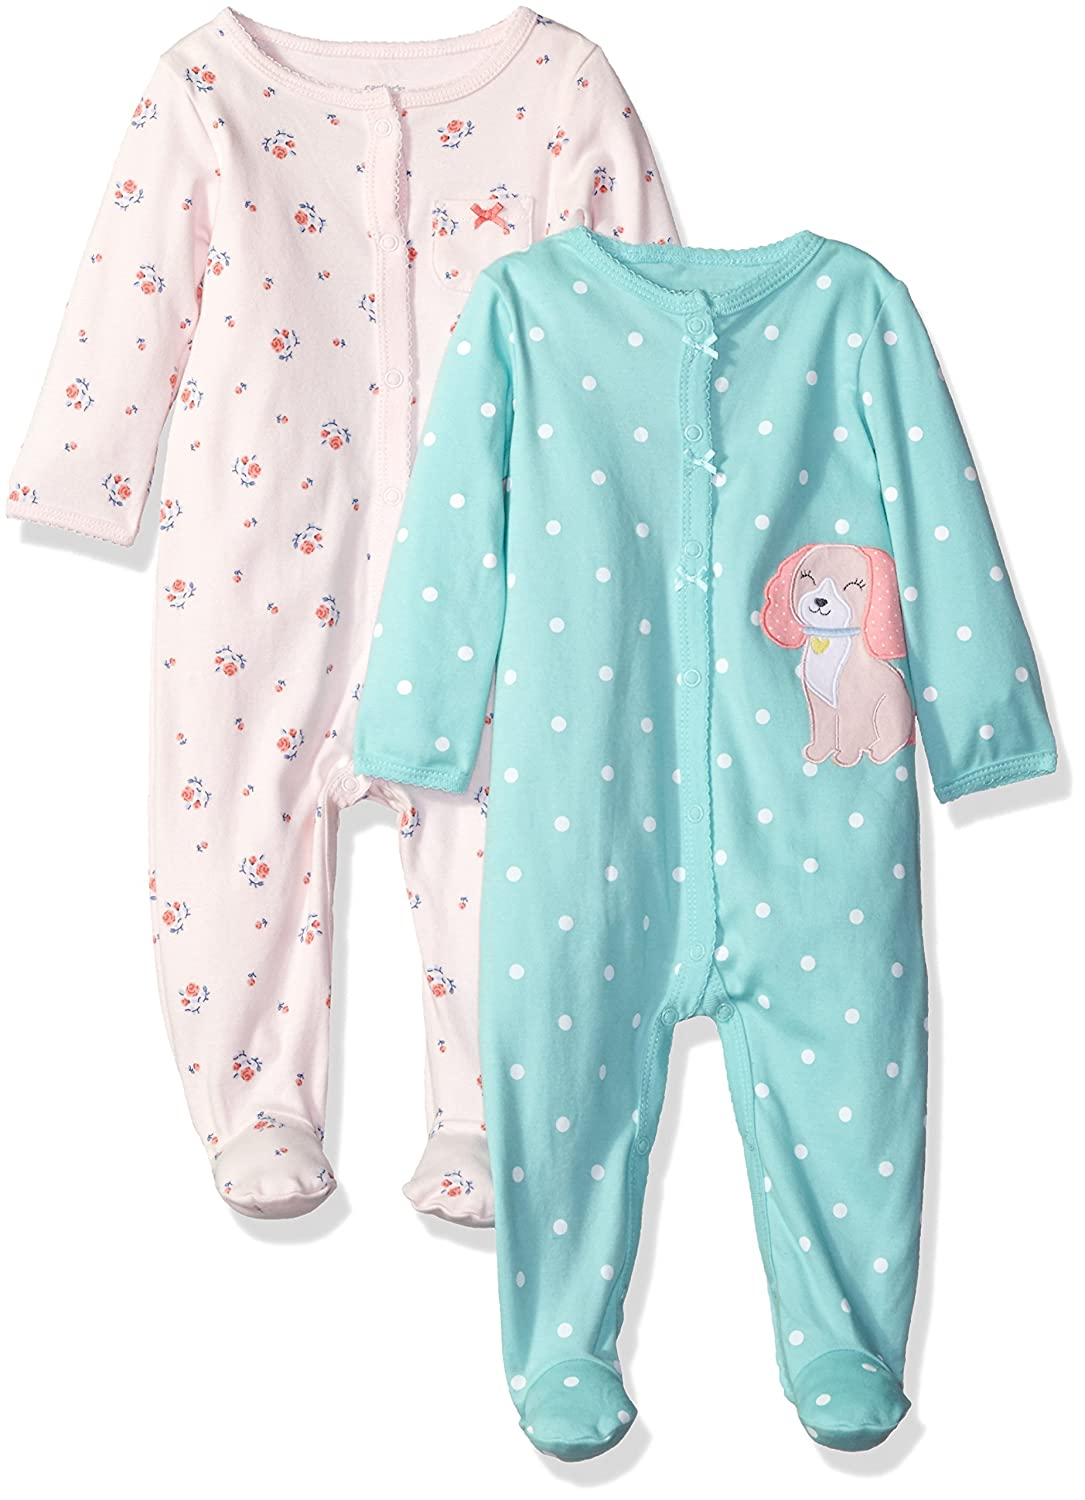 65a0002c4 Amazon.com  Carter s Girls  2-Pack Cotton Sleep and Play  Clothing